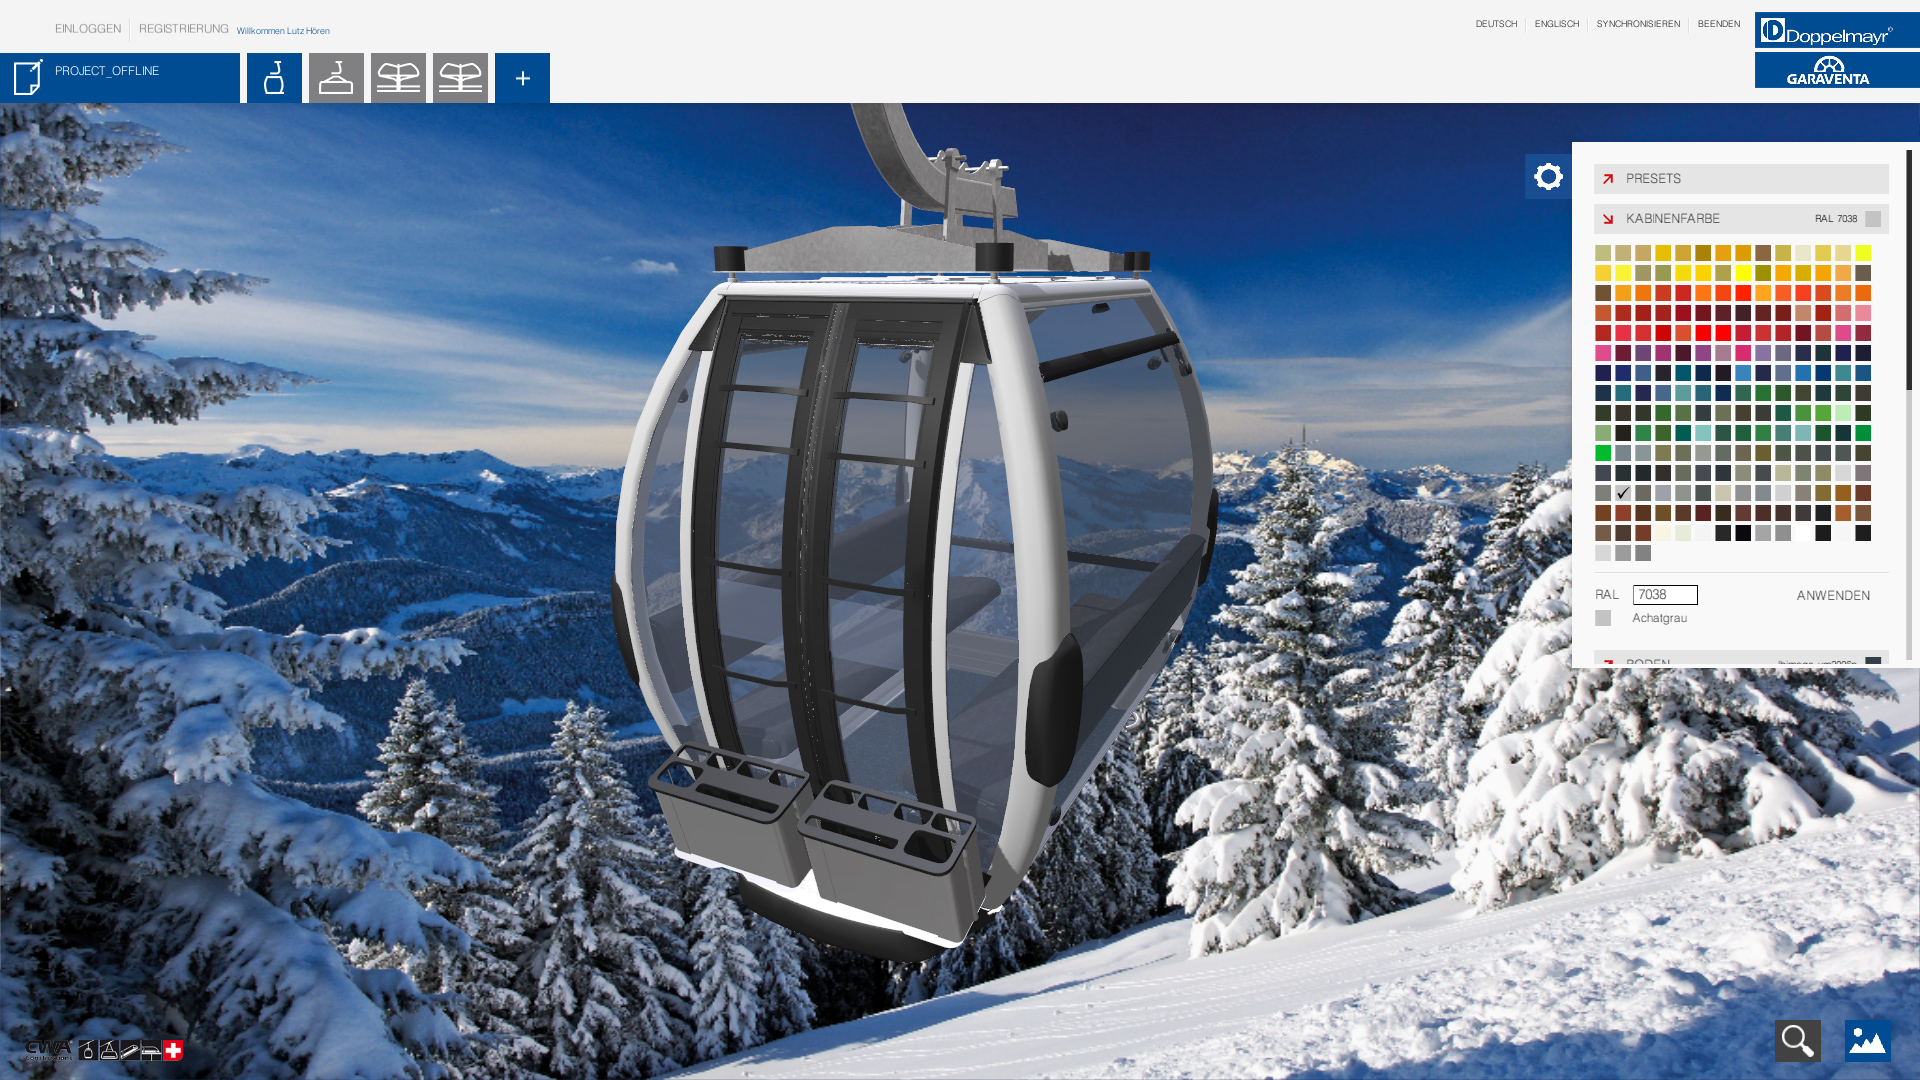 doppelmayr ropeway configurator gondola with user interface